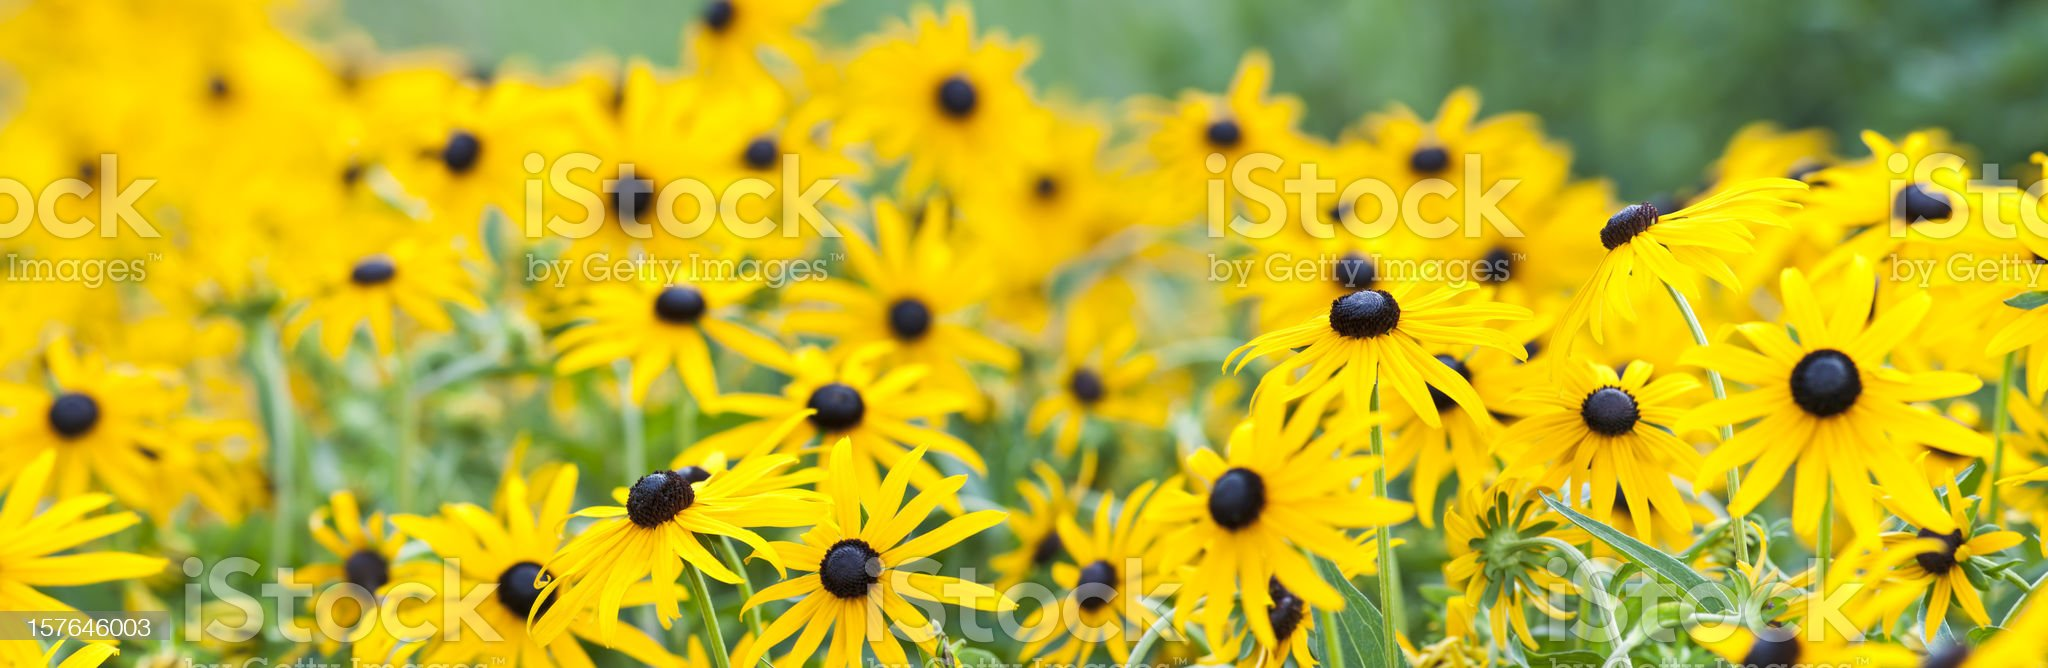 Rudbeckia hirta (Black-Eyed Susan) (panorama) royalty-free stock photo